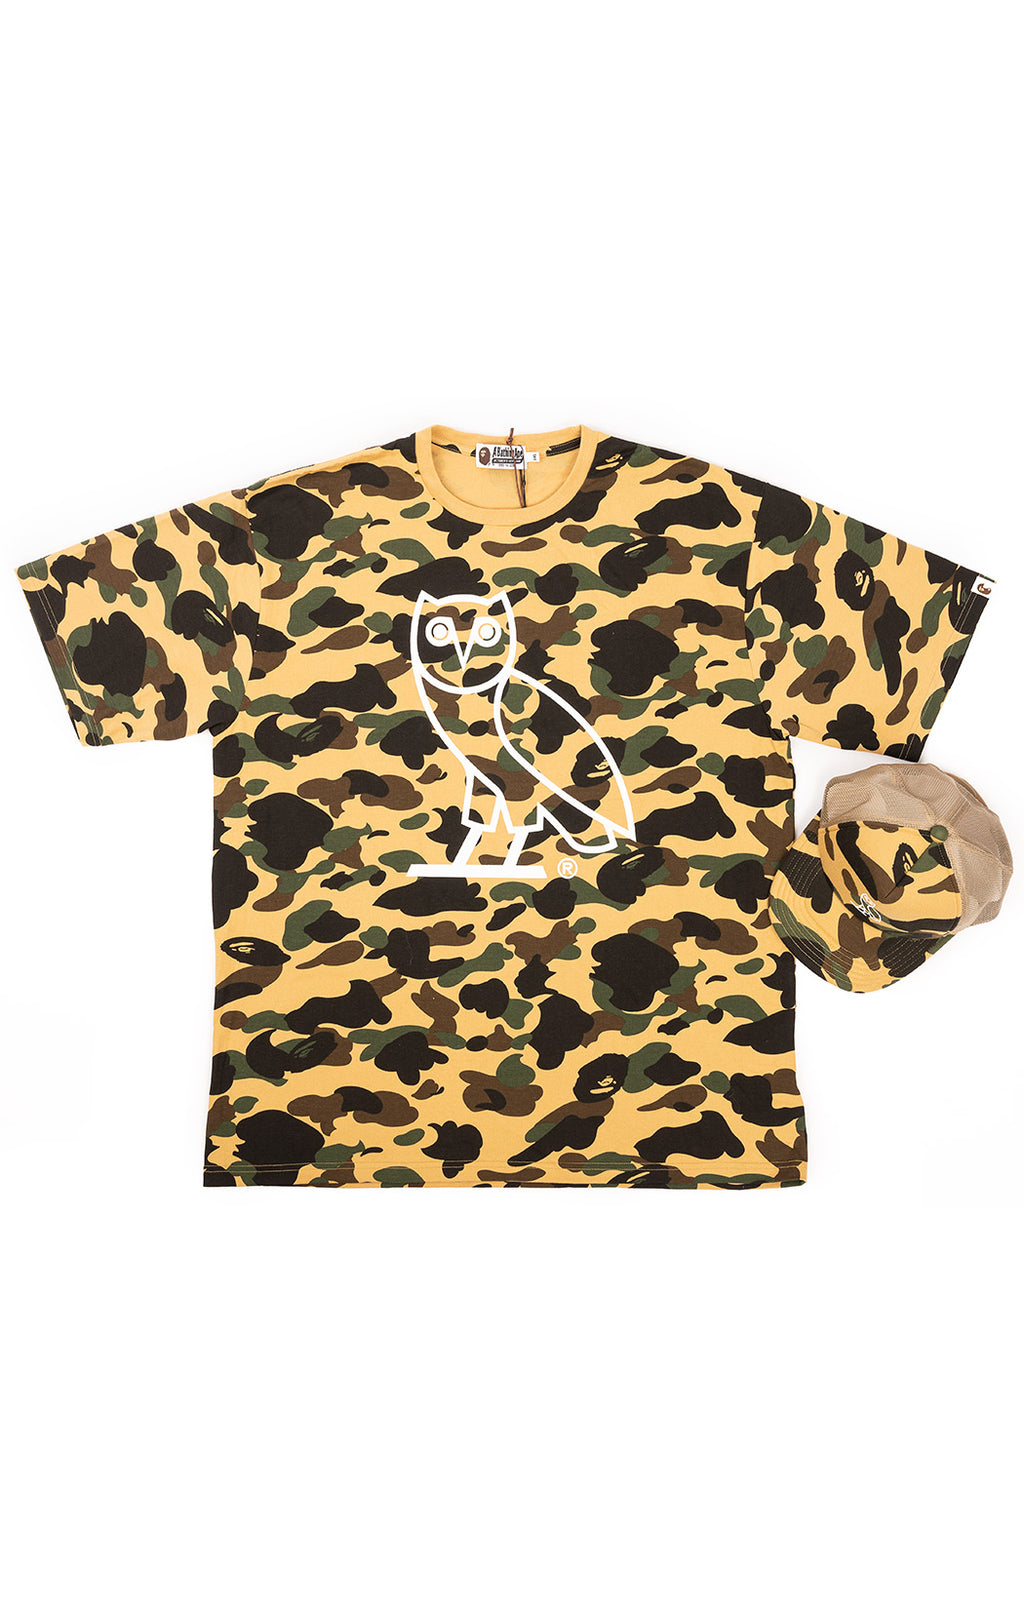 A BATHING APE with tags  T-shirt and matching baseball cap Size: 3 XL t-shirt / O/S cap